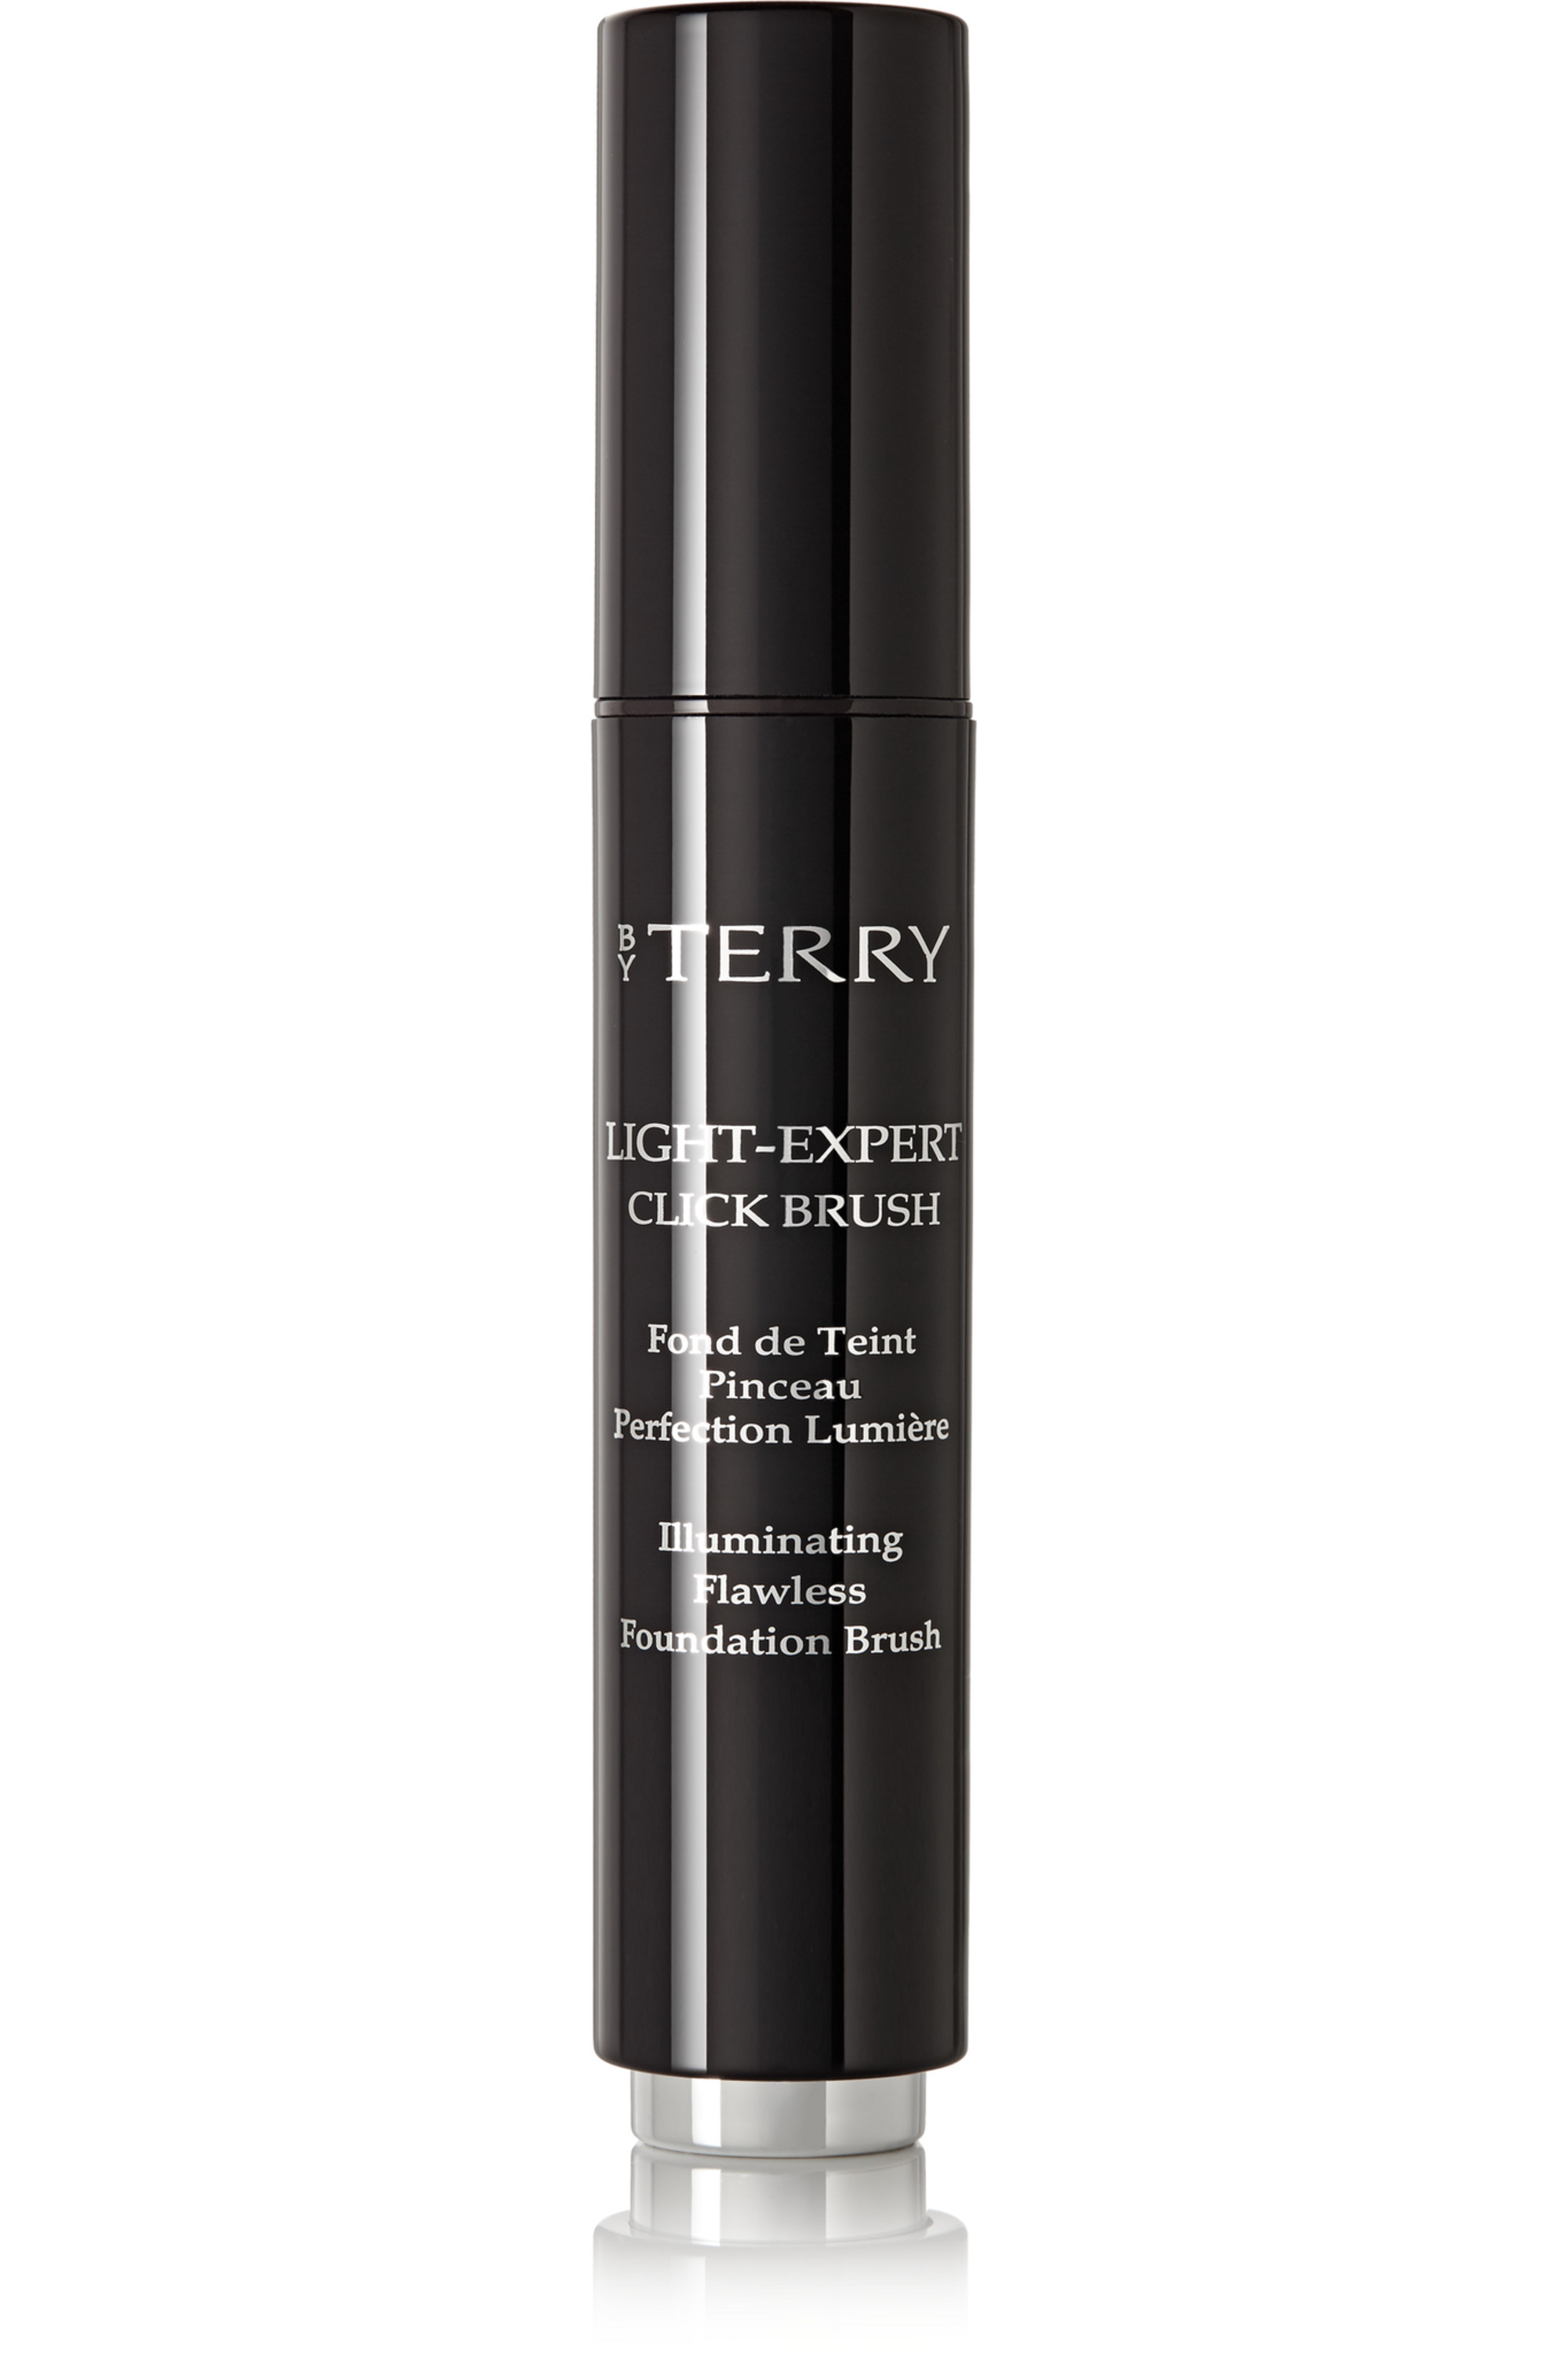 BY TERRY Light-Expert Illuminating Flawless Foundation Brush - Rosy Beige 4, 19.5ml